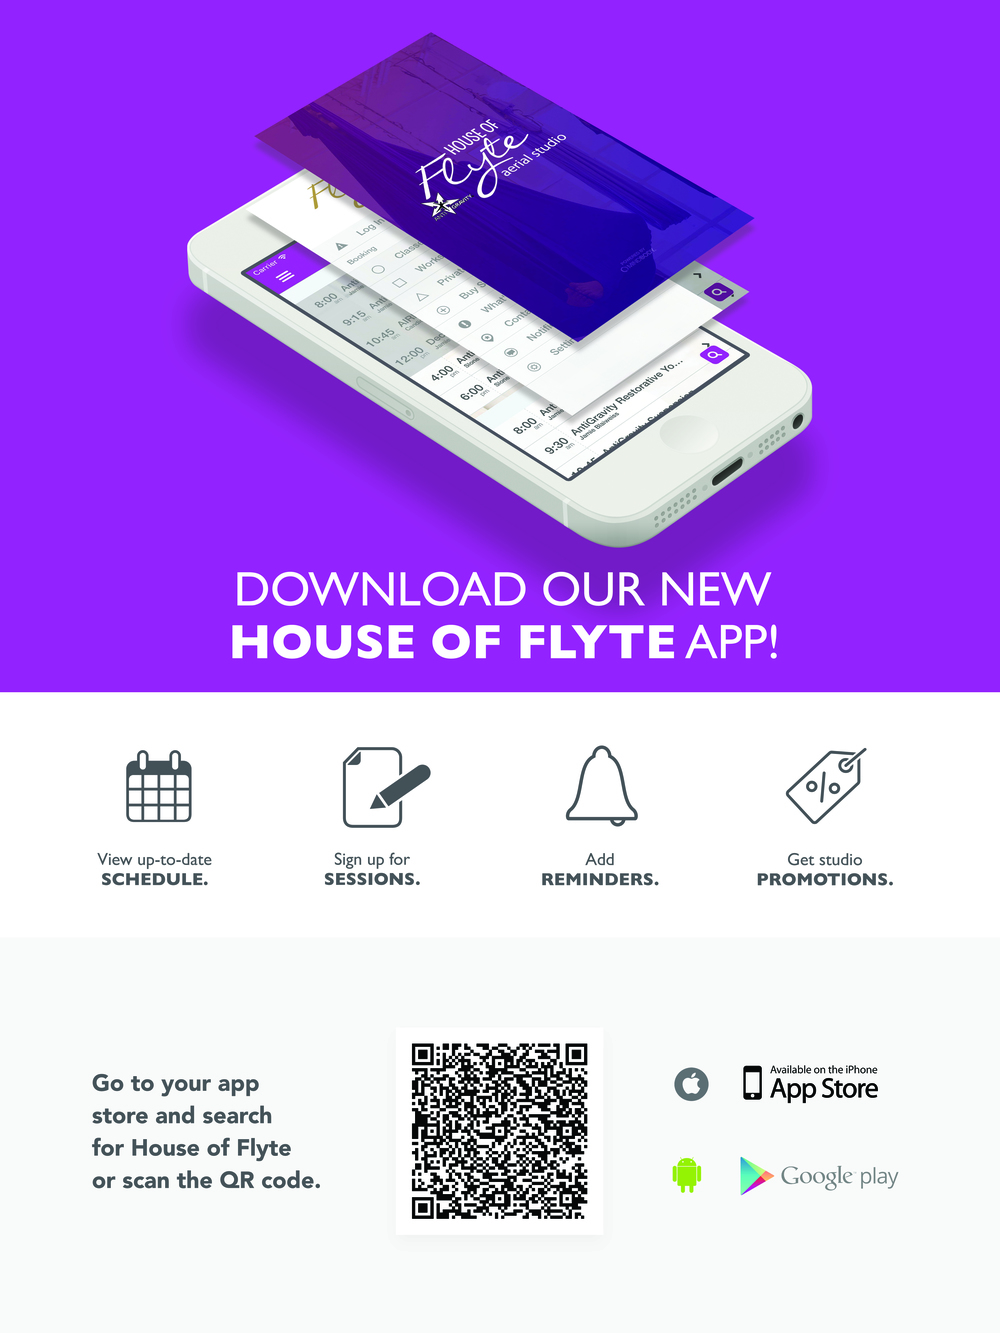 House of Flyte App